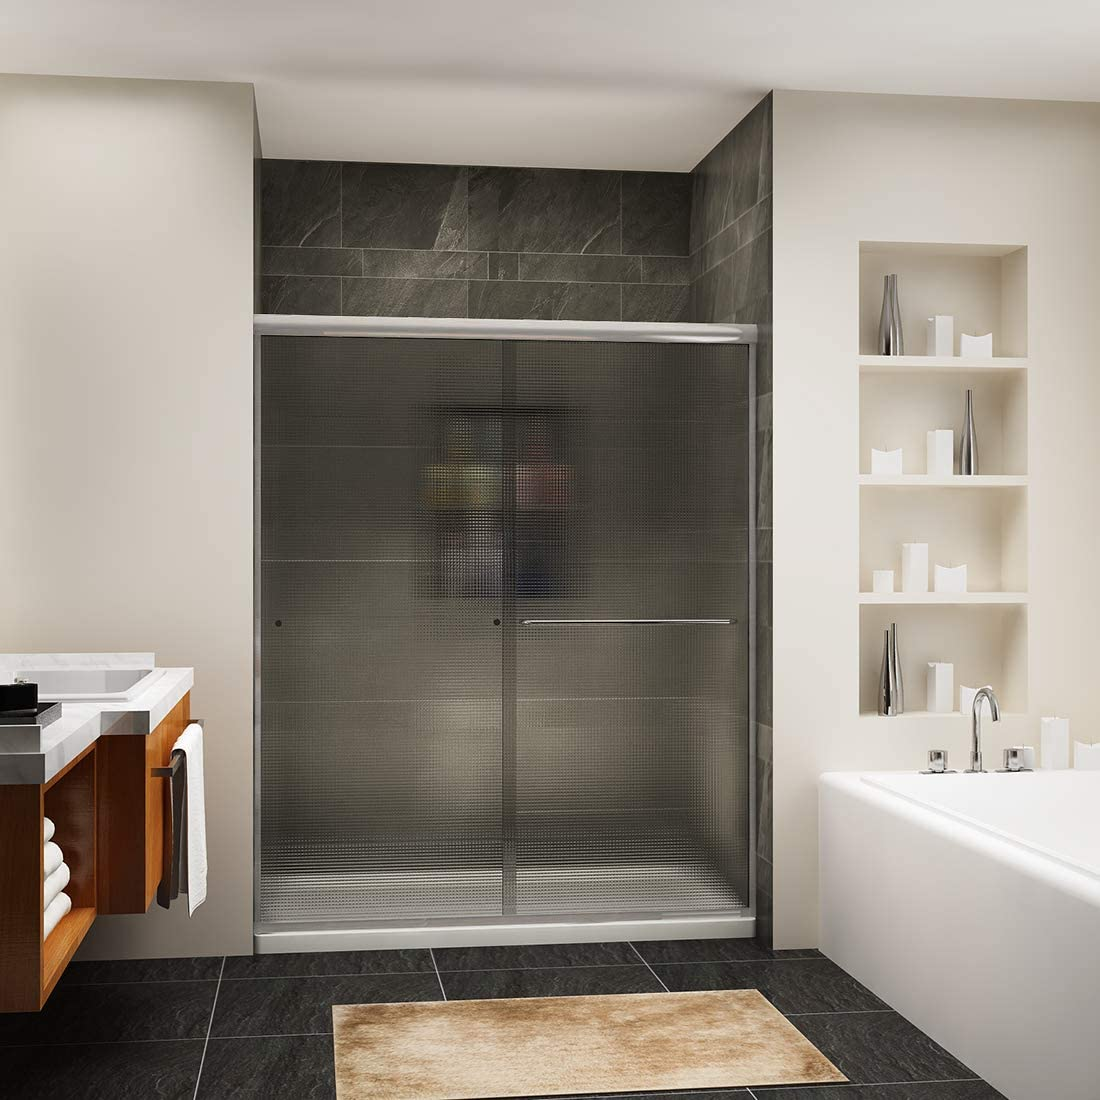 SUNNY SHOWER Semi-Frameless Shower Door, 60 in W x 72 in. H Bathroom 2 Sliding Door, 1 4 inch Frosted Glass, Brushed Nickel Finish